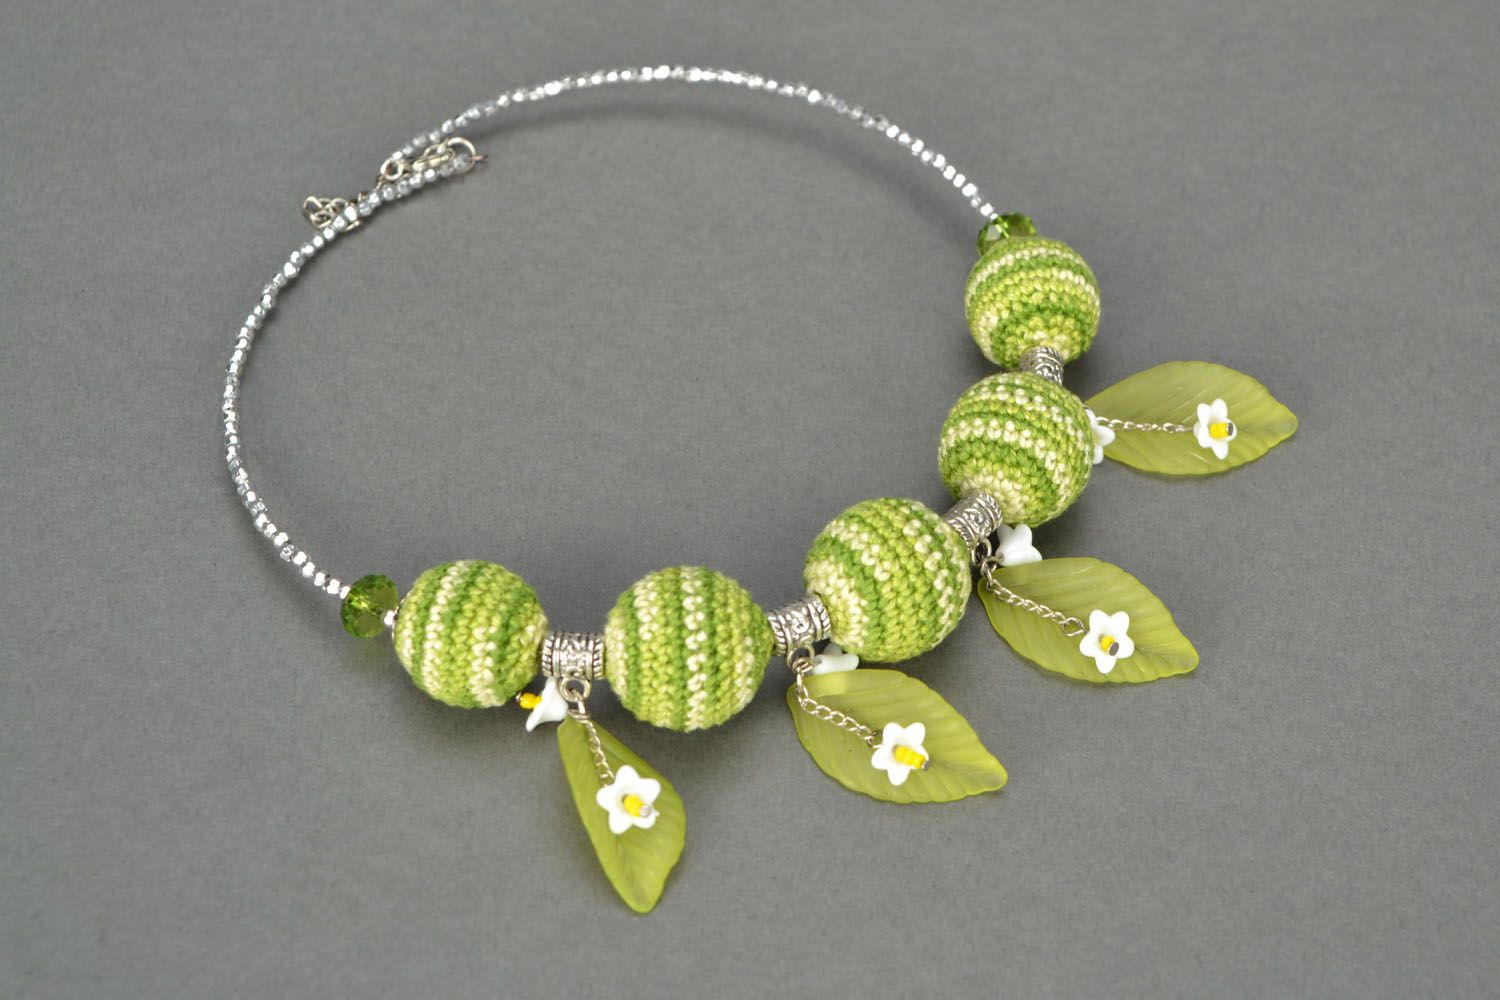 Necklace with crocheted round beads photo 1